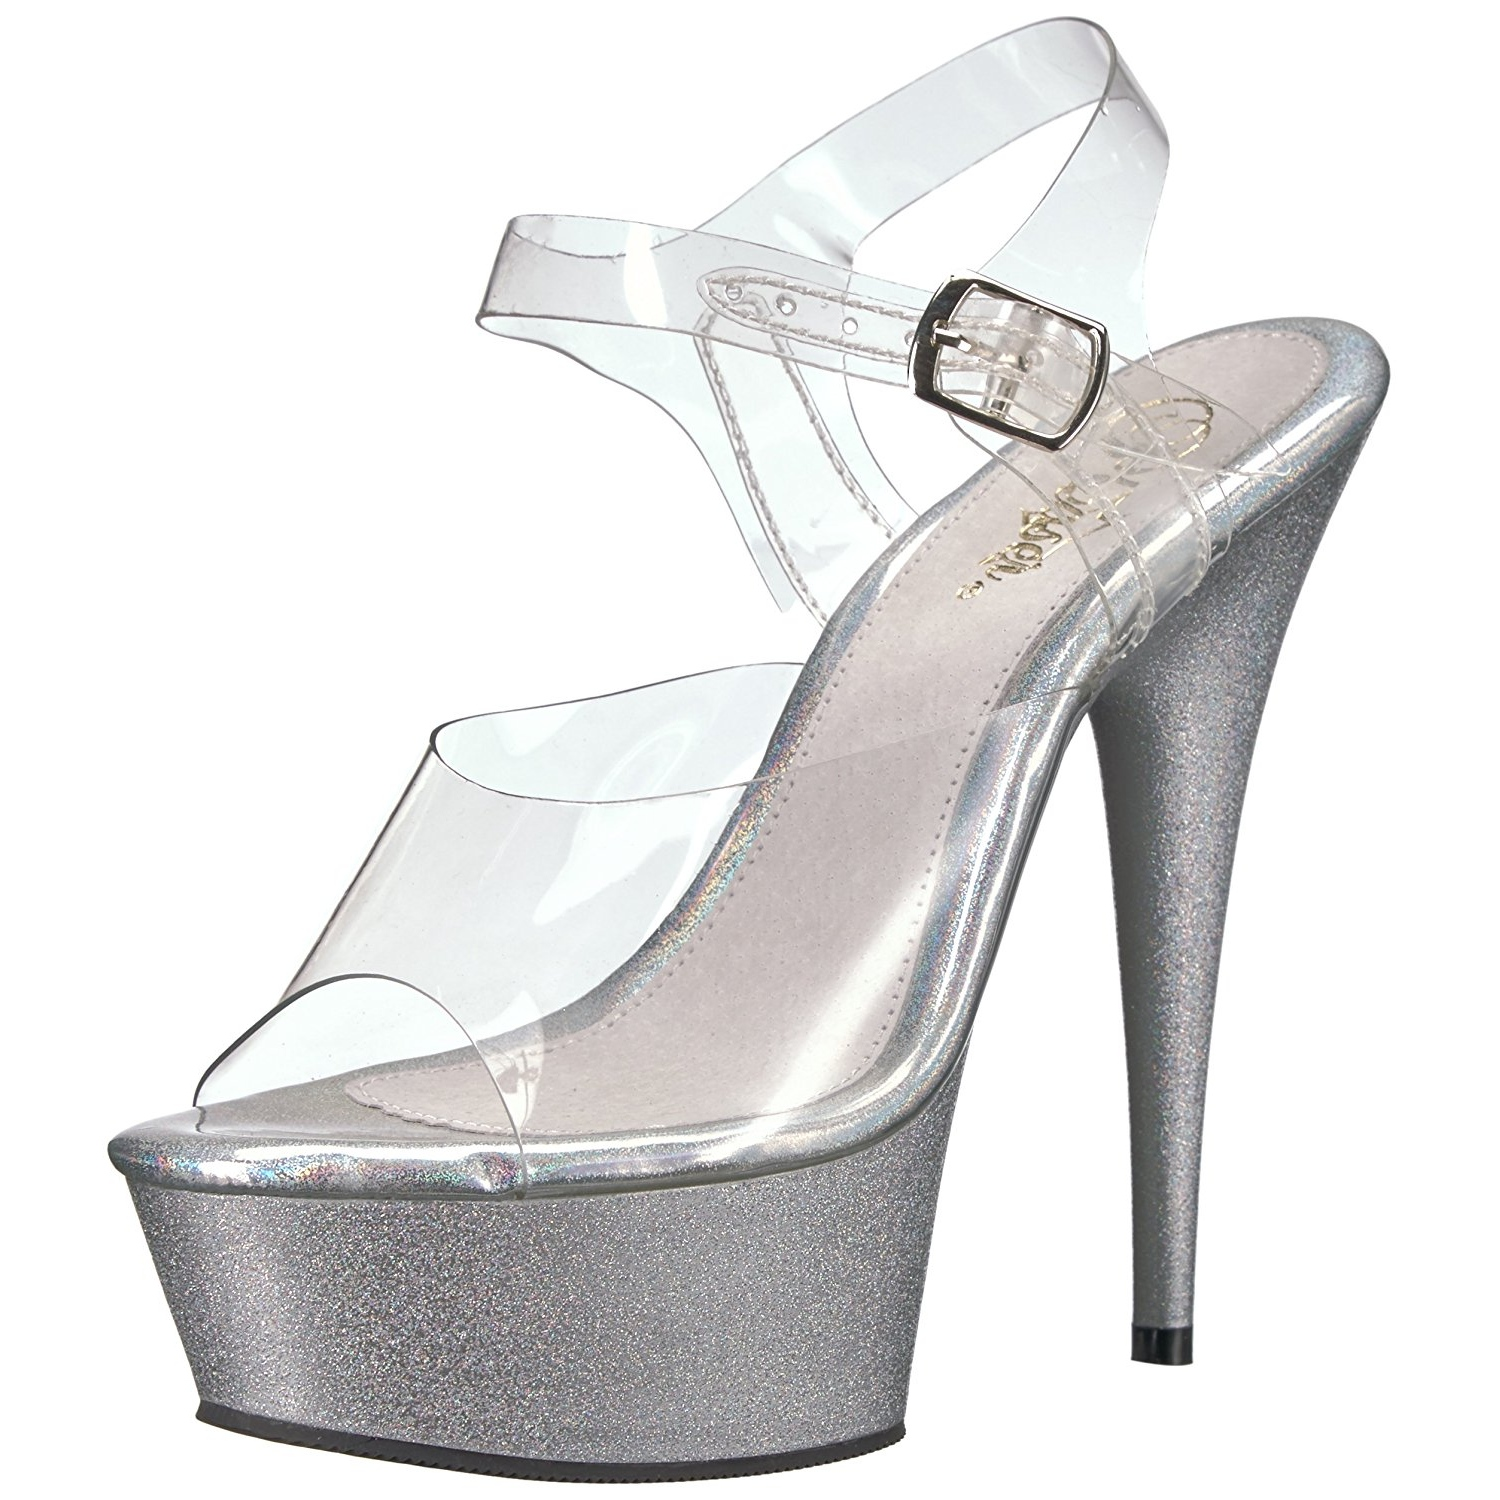 74752edab88 Silver glitter 15 cm Pleaser DELIGHT-608HG Pole dancing high heels shoes